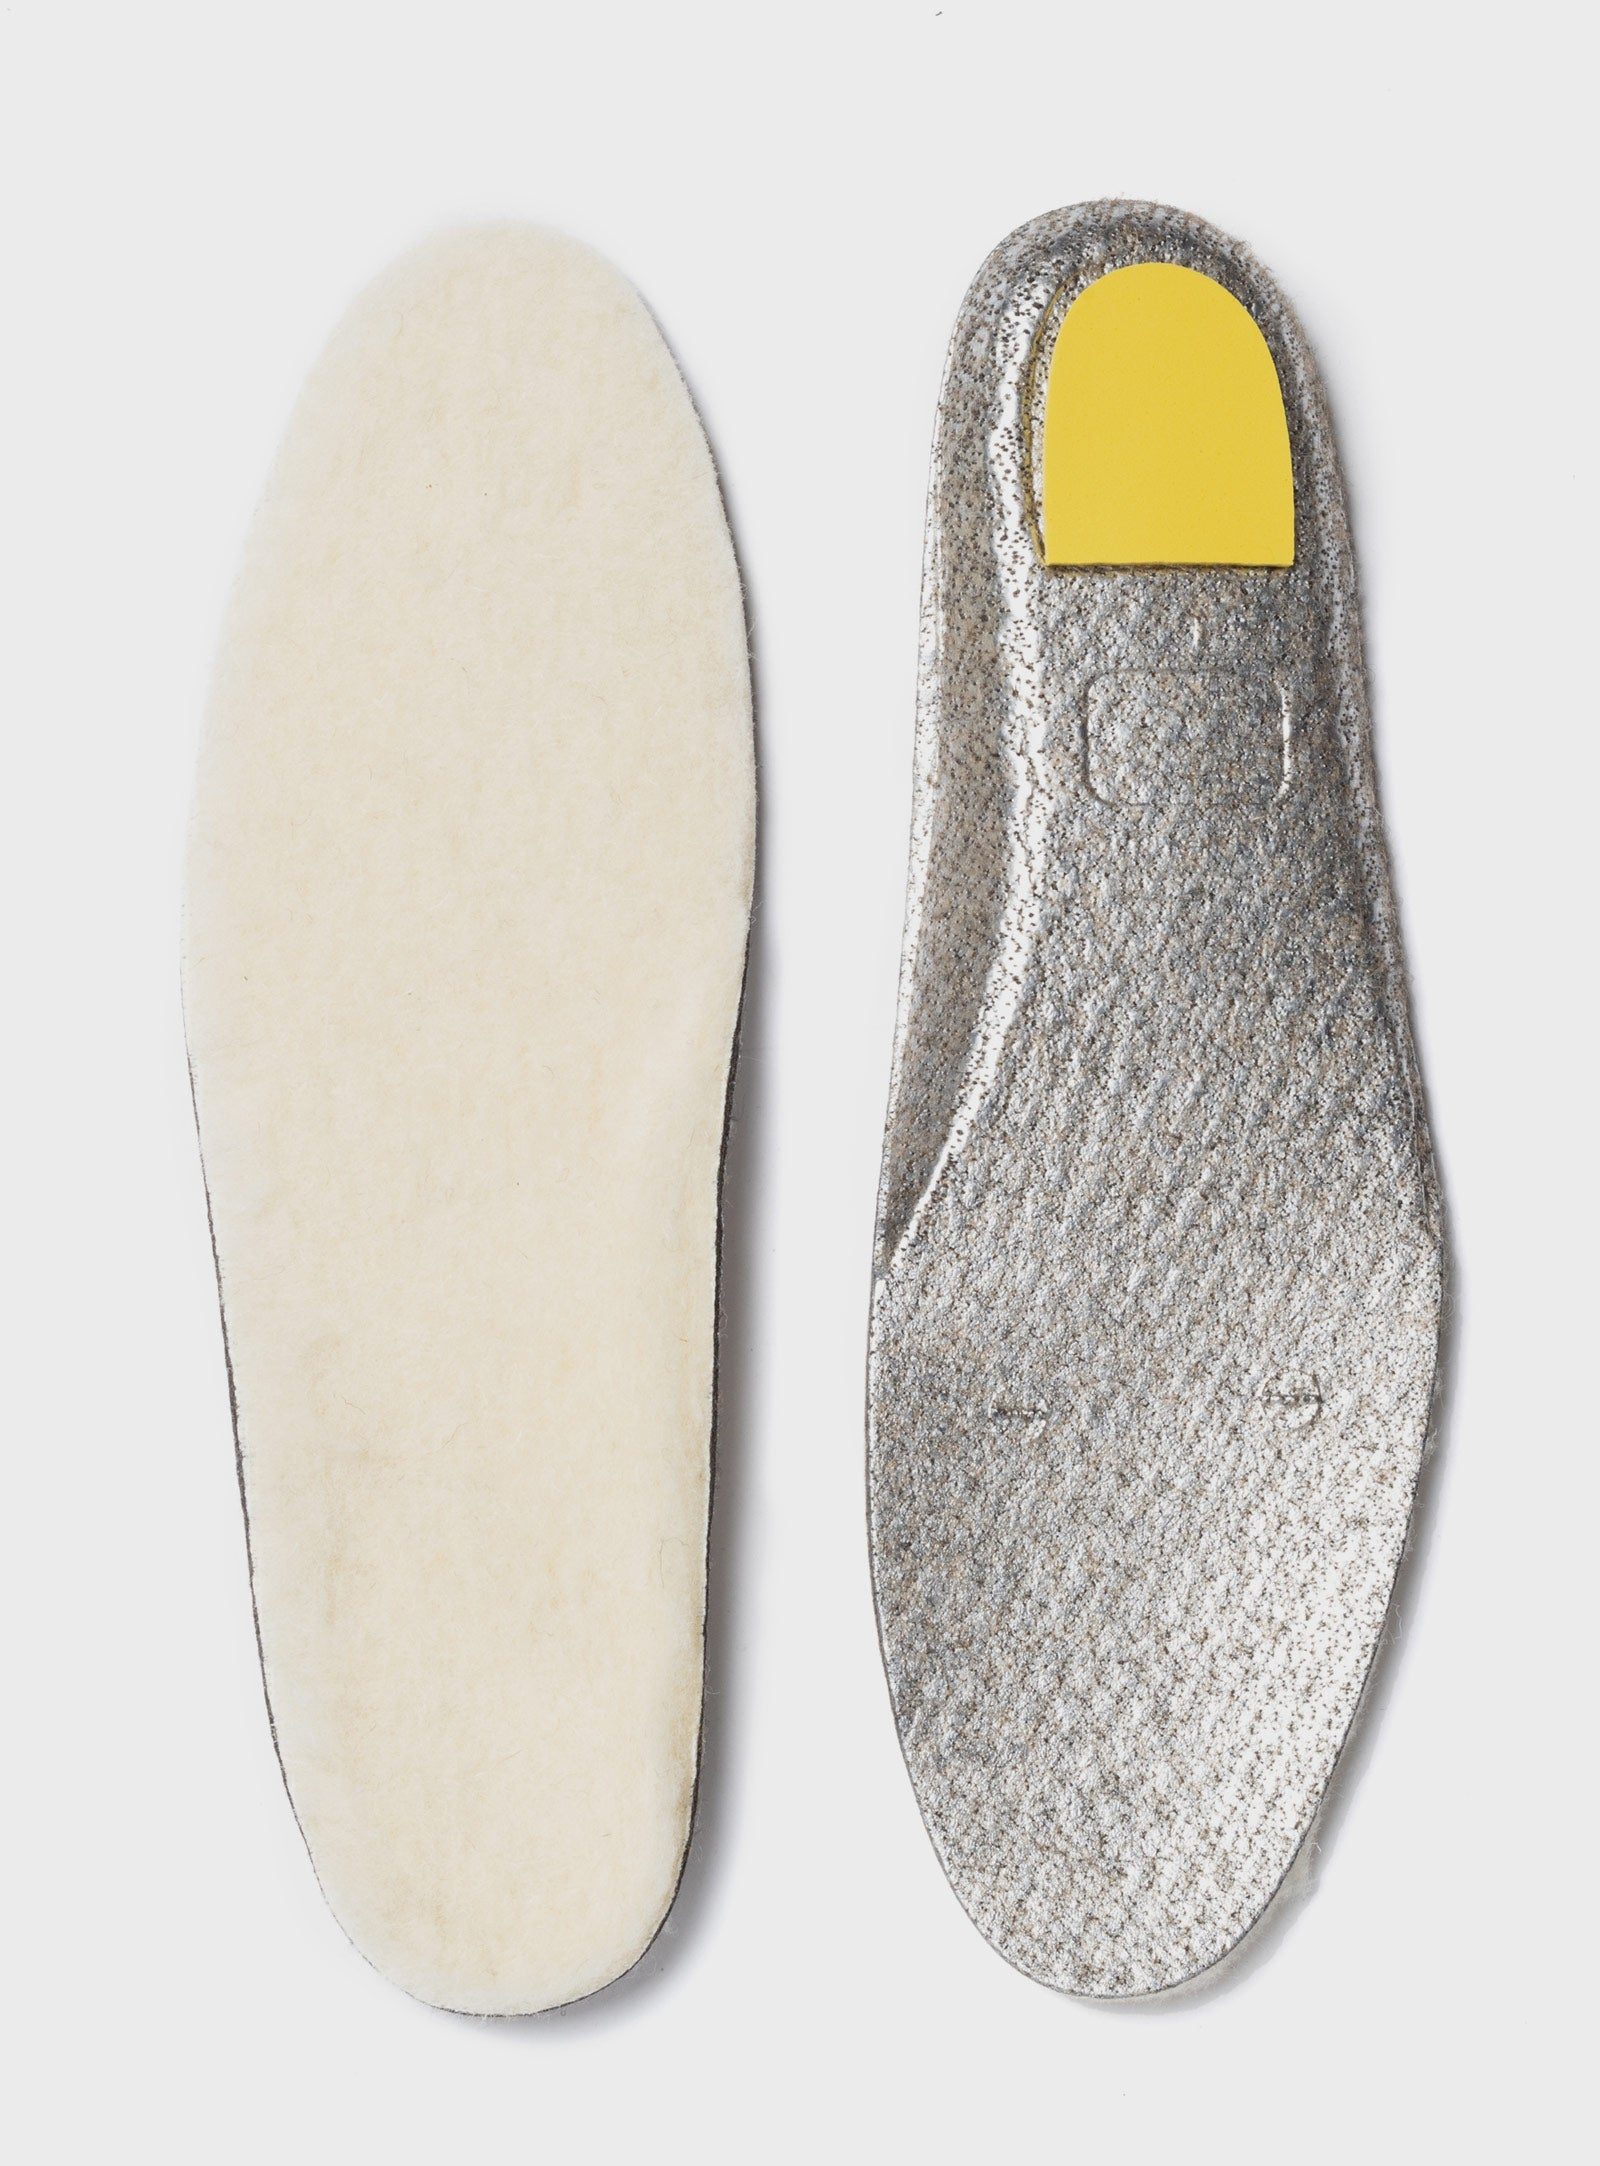 Anfibio Wool Insoles